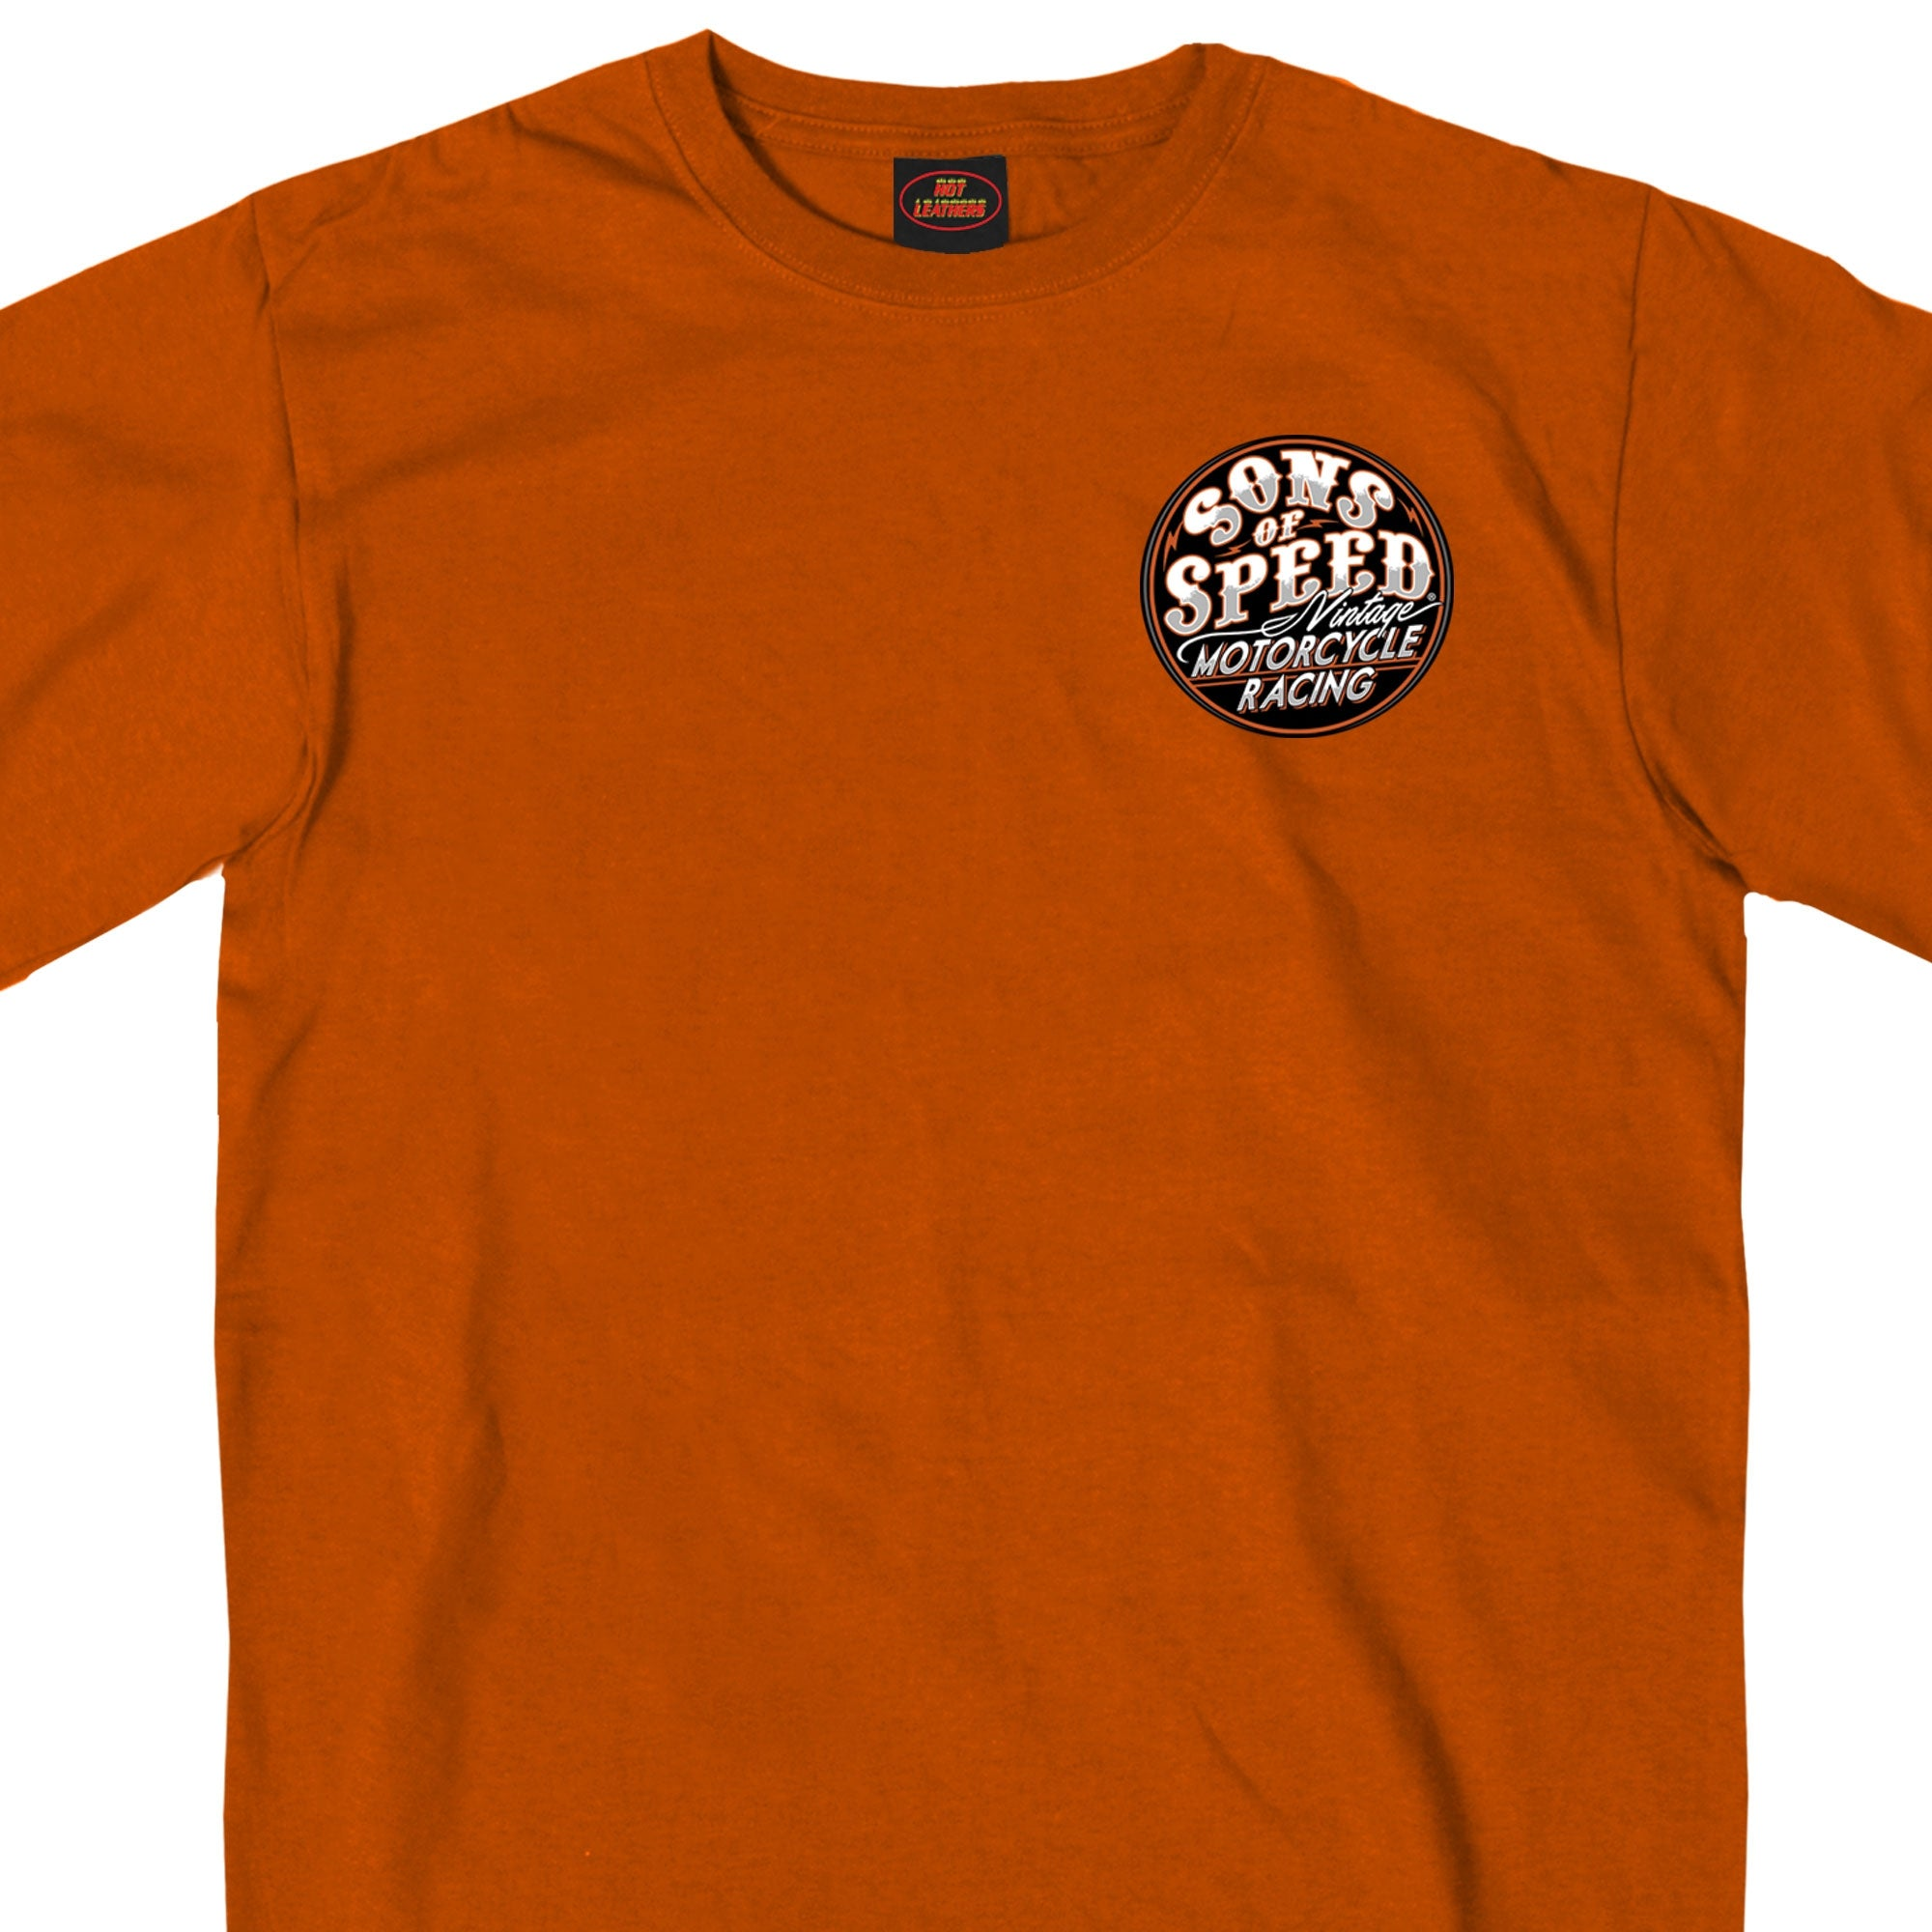 Official Sons of Speed Vintage Motorcycle Racing Texas Orange T-Shirt